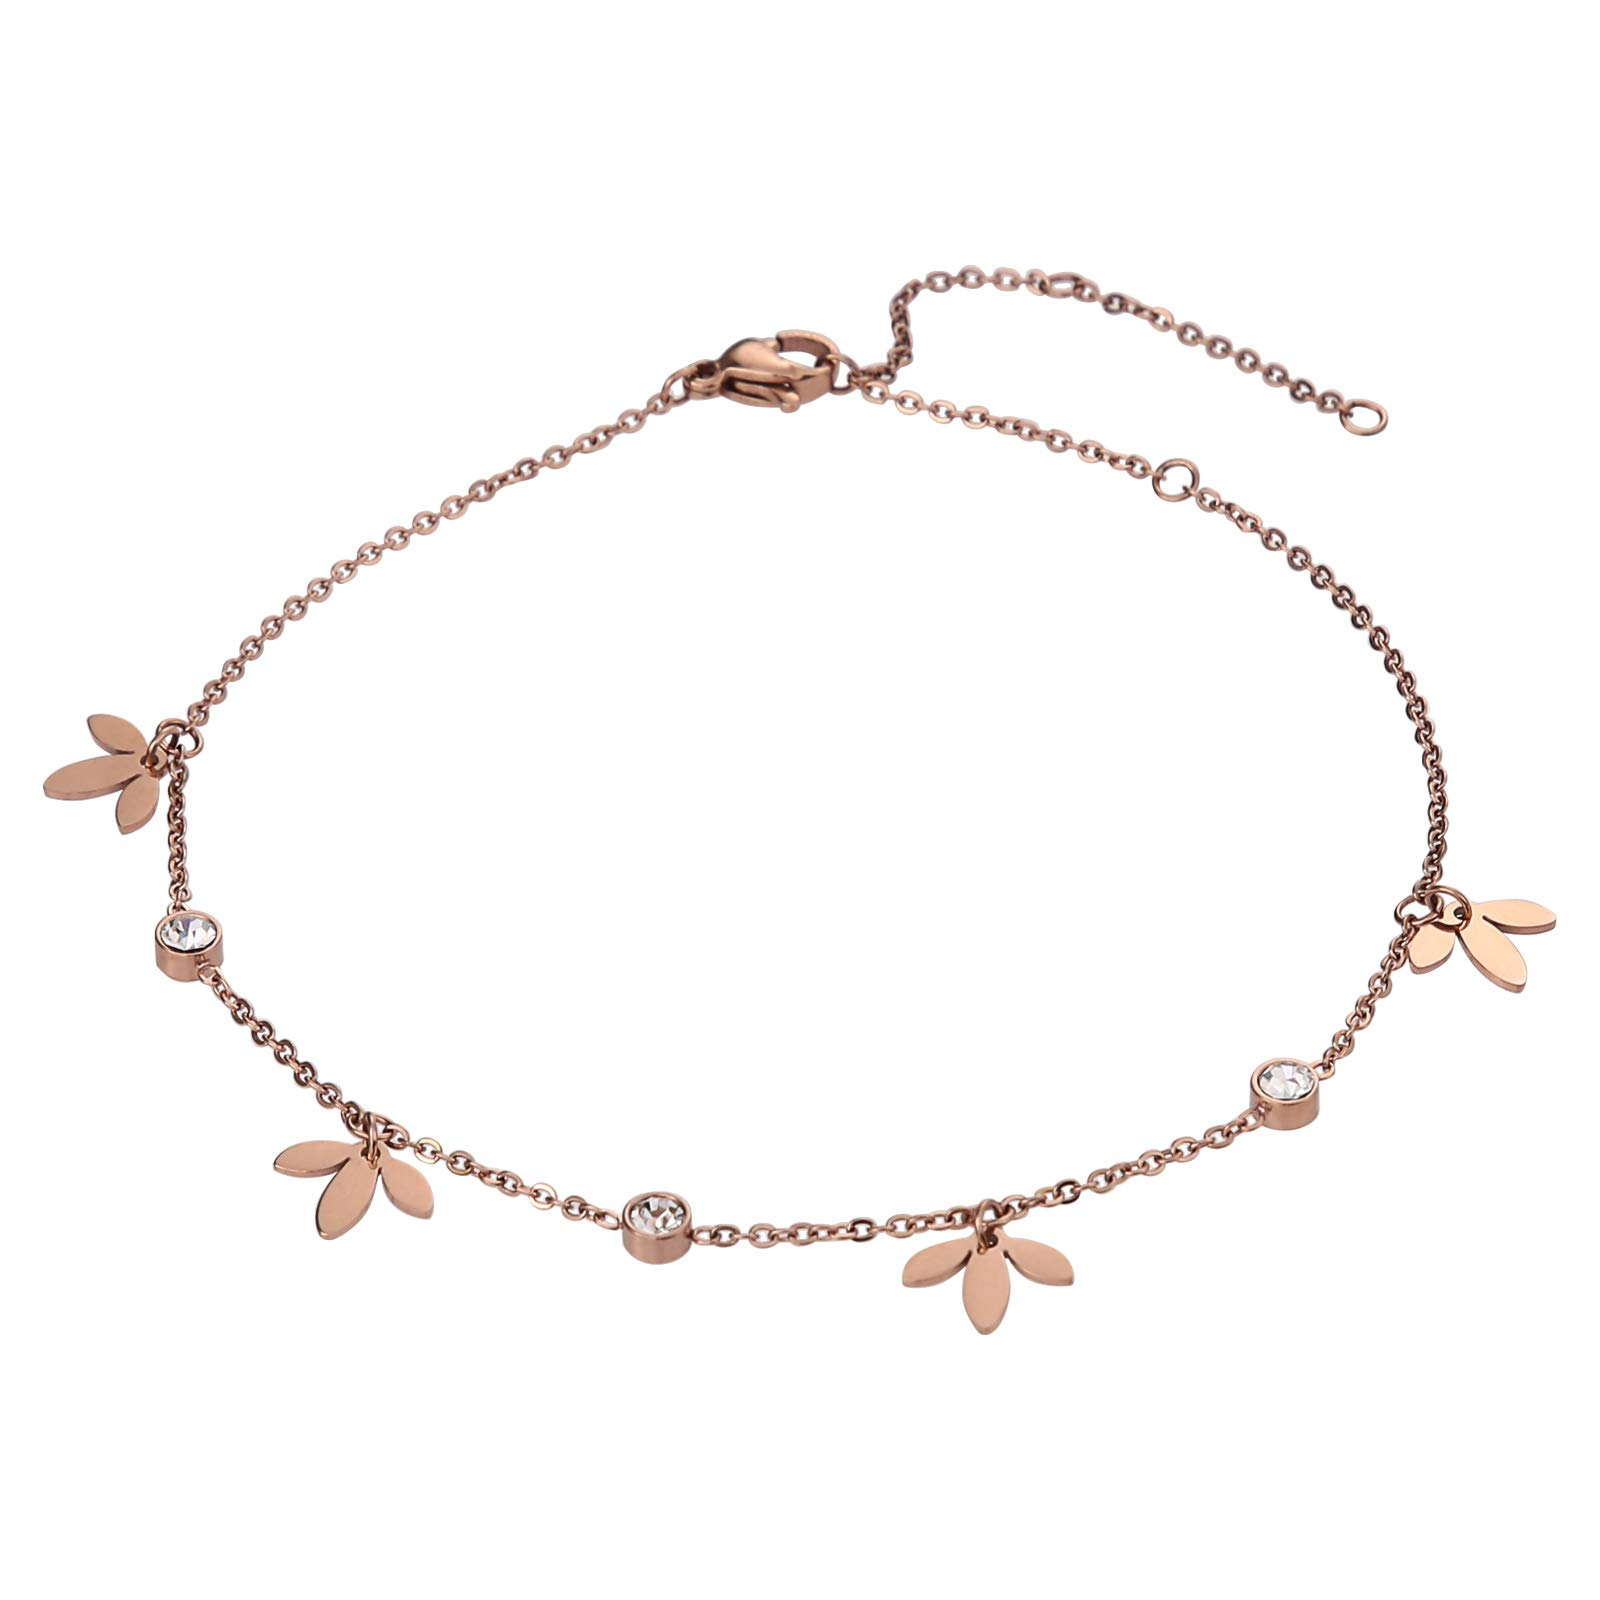 Beydodo Stainless Steel Ankle Bracelet Large Rose Gold Ankle Bracelet 11 inch Clover with Cubic Zircon